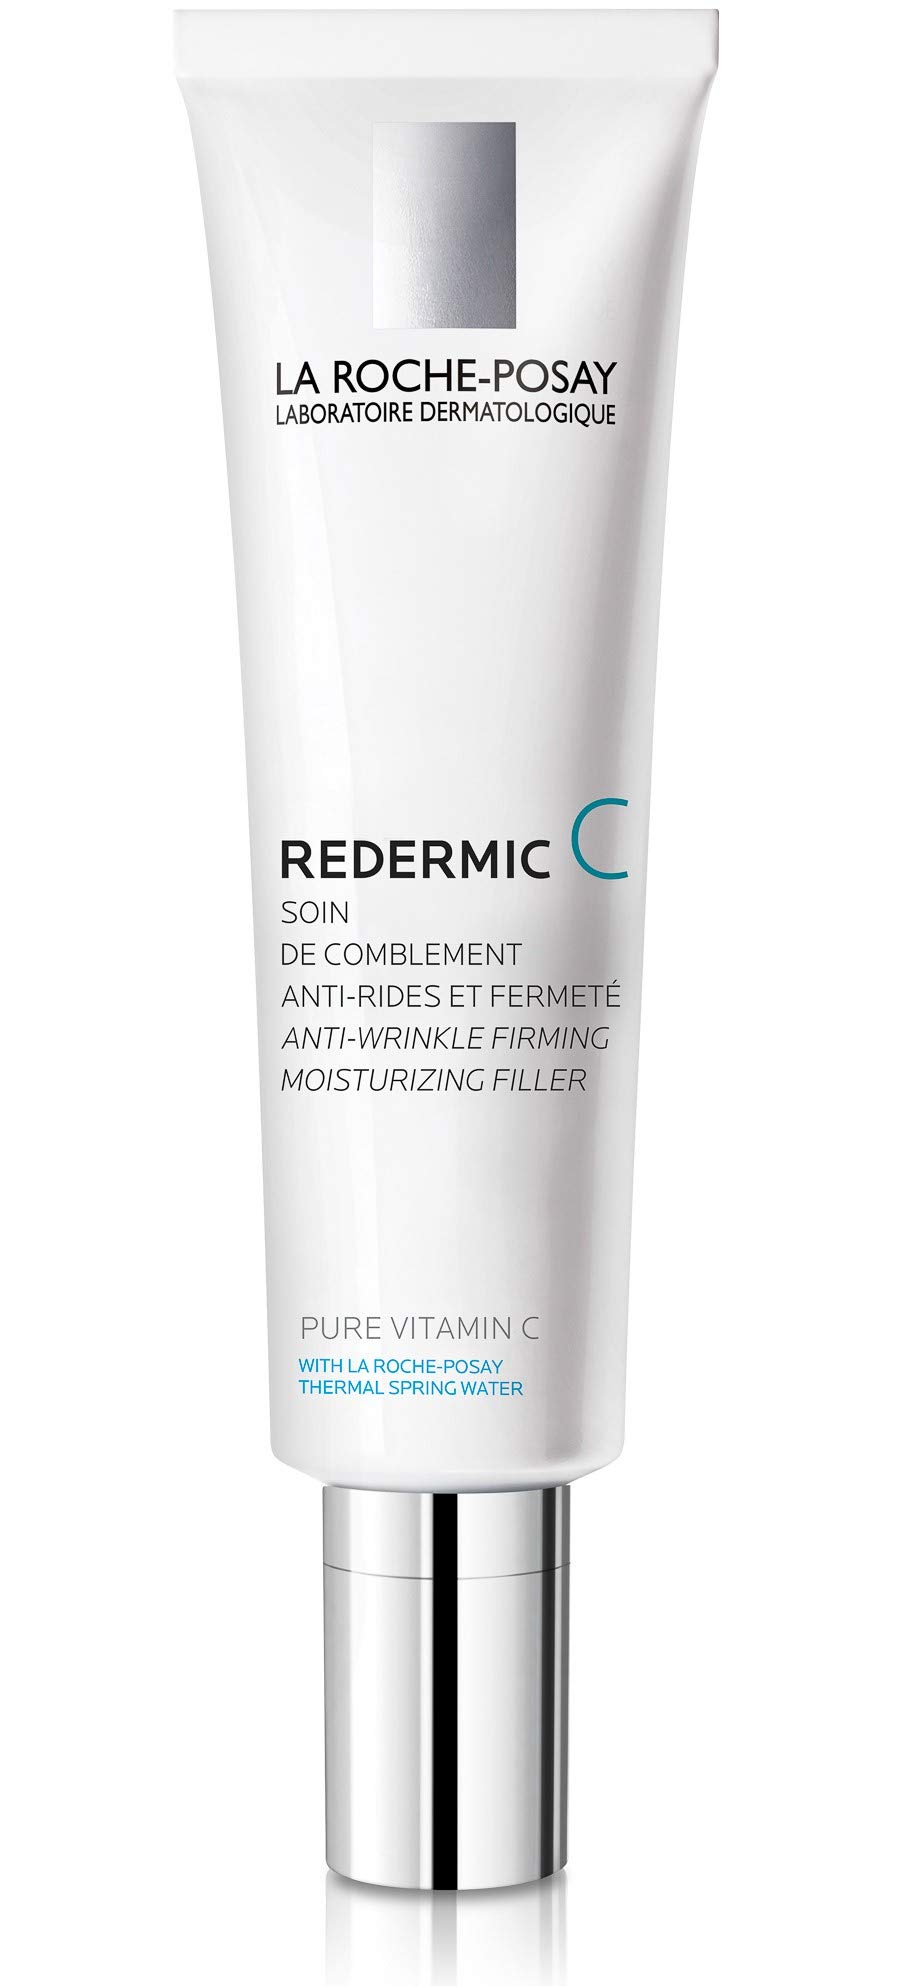 La Roche Posay Redermic Hyalu C Crema Antiedad Pieles Normal y Mixtas – 40 ml